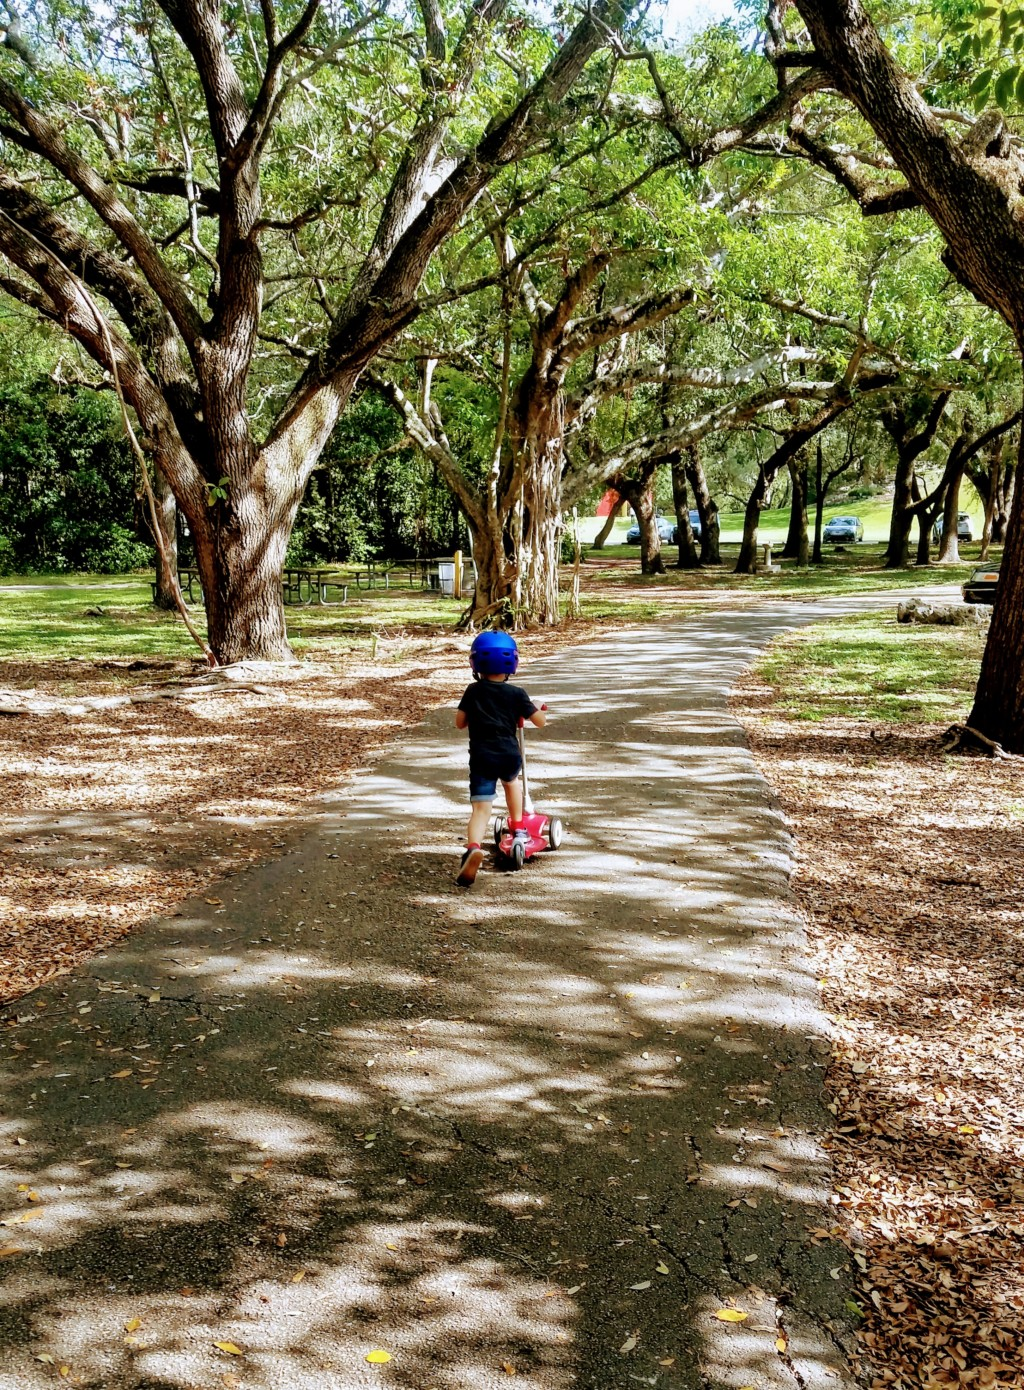 My 5-year old son riding his scooter during some recent time together at Greyolds Park Miami Moms Blog